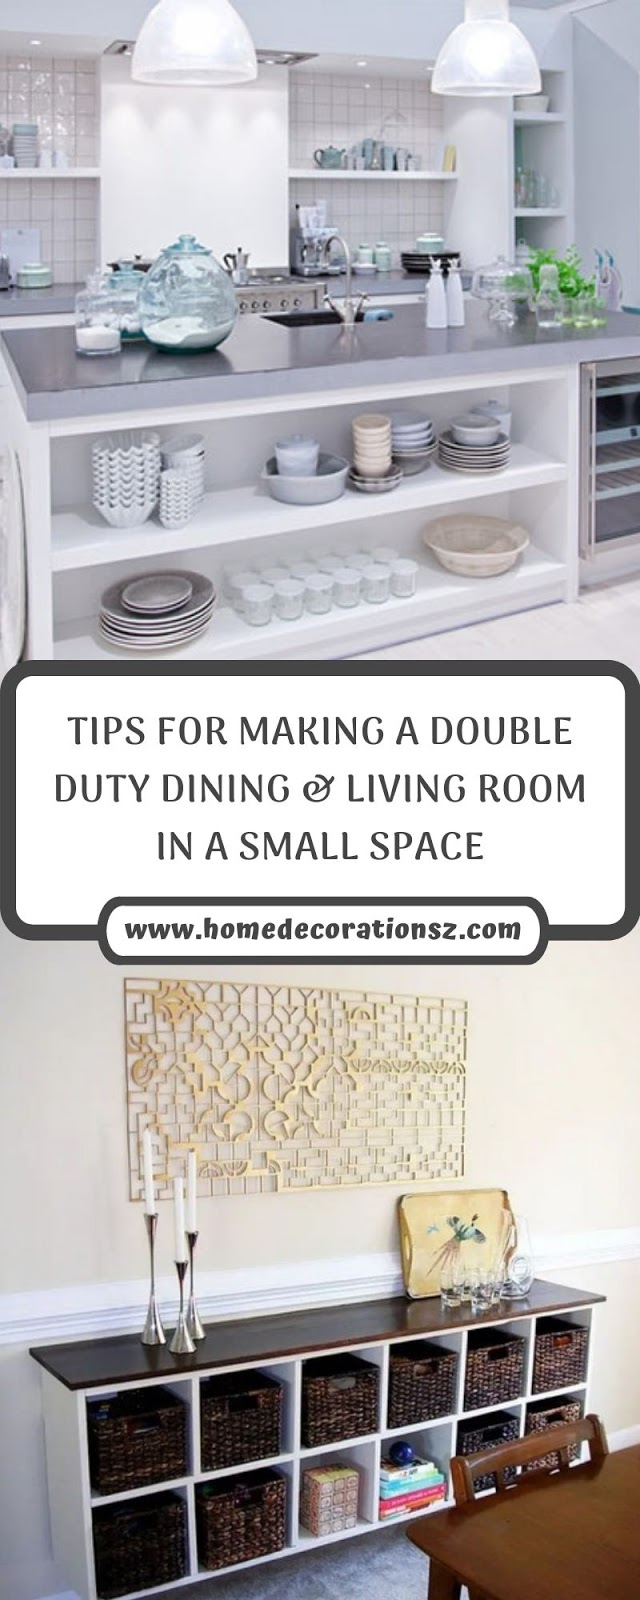 TIPS FOR MAKING A DOUBLE DUTY DINING & LIVING ROOM IN A SMALL SPACE